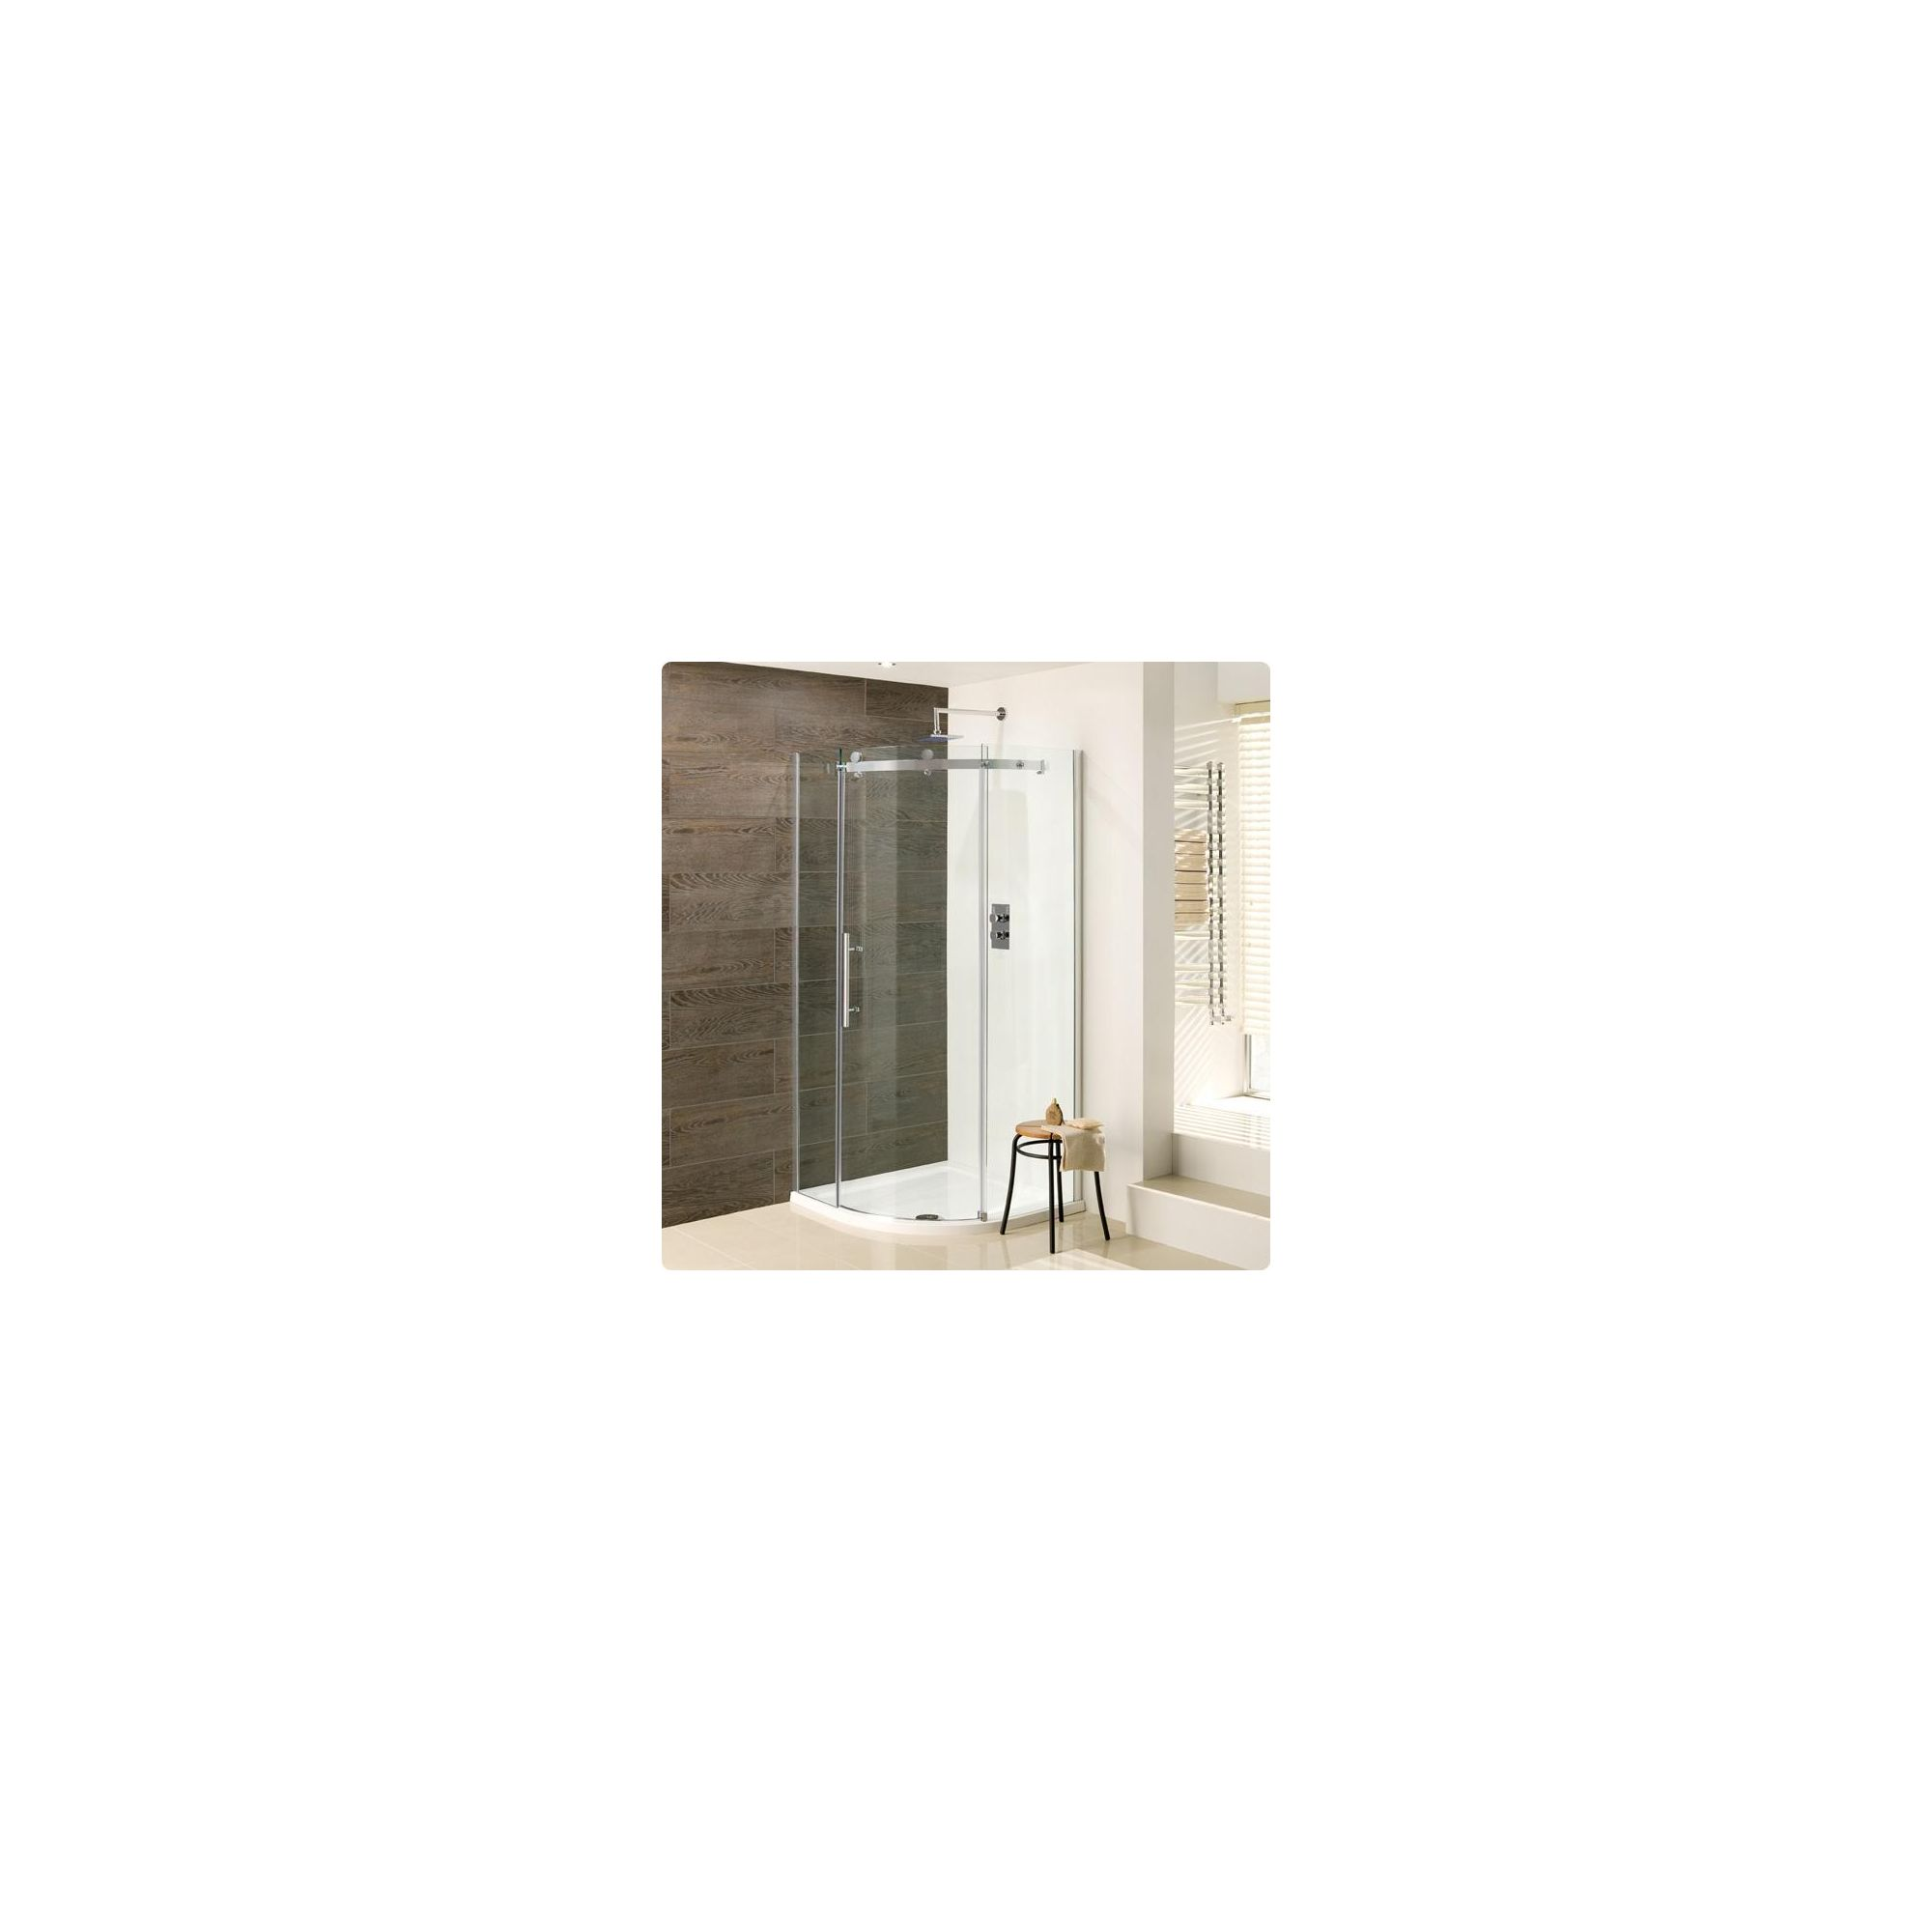 Duchy Deluxe Silver Quadrant Shower Enclosure 900mm (Complete with Tray), 10mm Glass at Tesco Direct